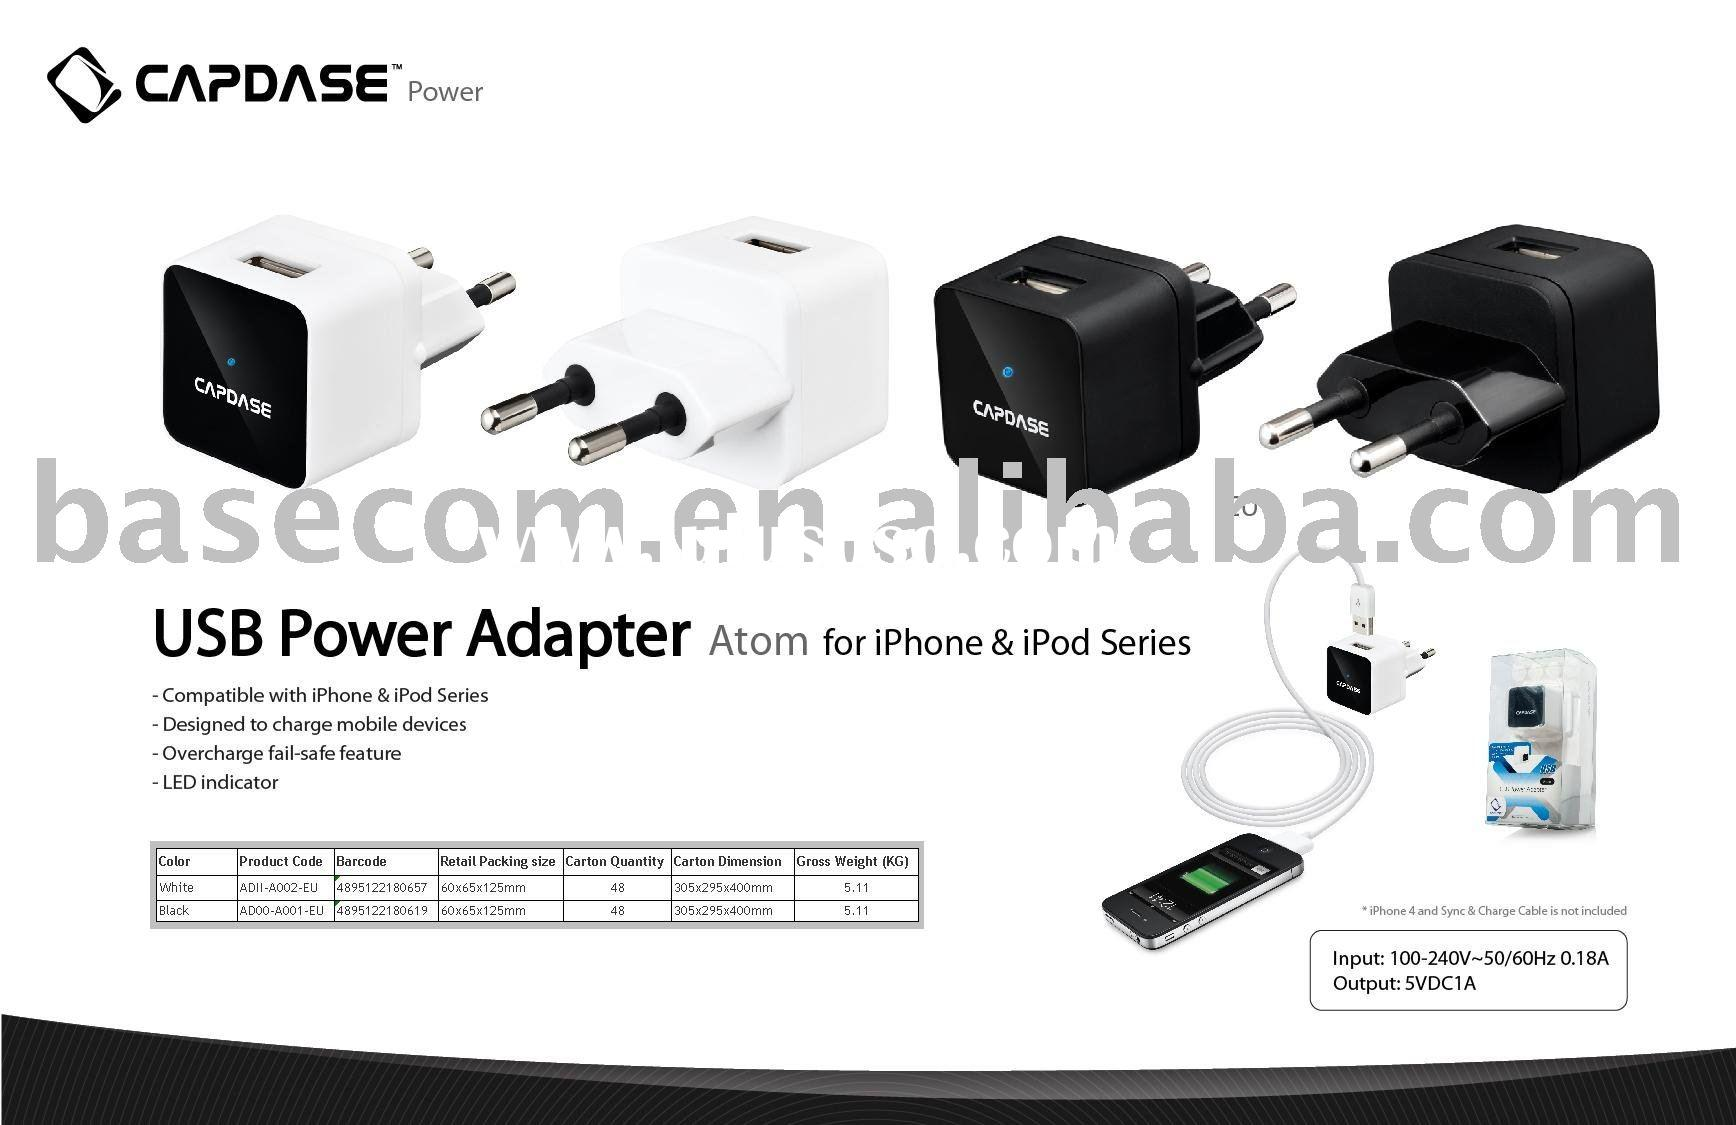 capdase USB power adapter for iPhone and iPod series